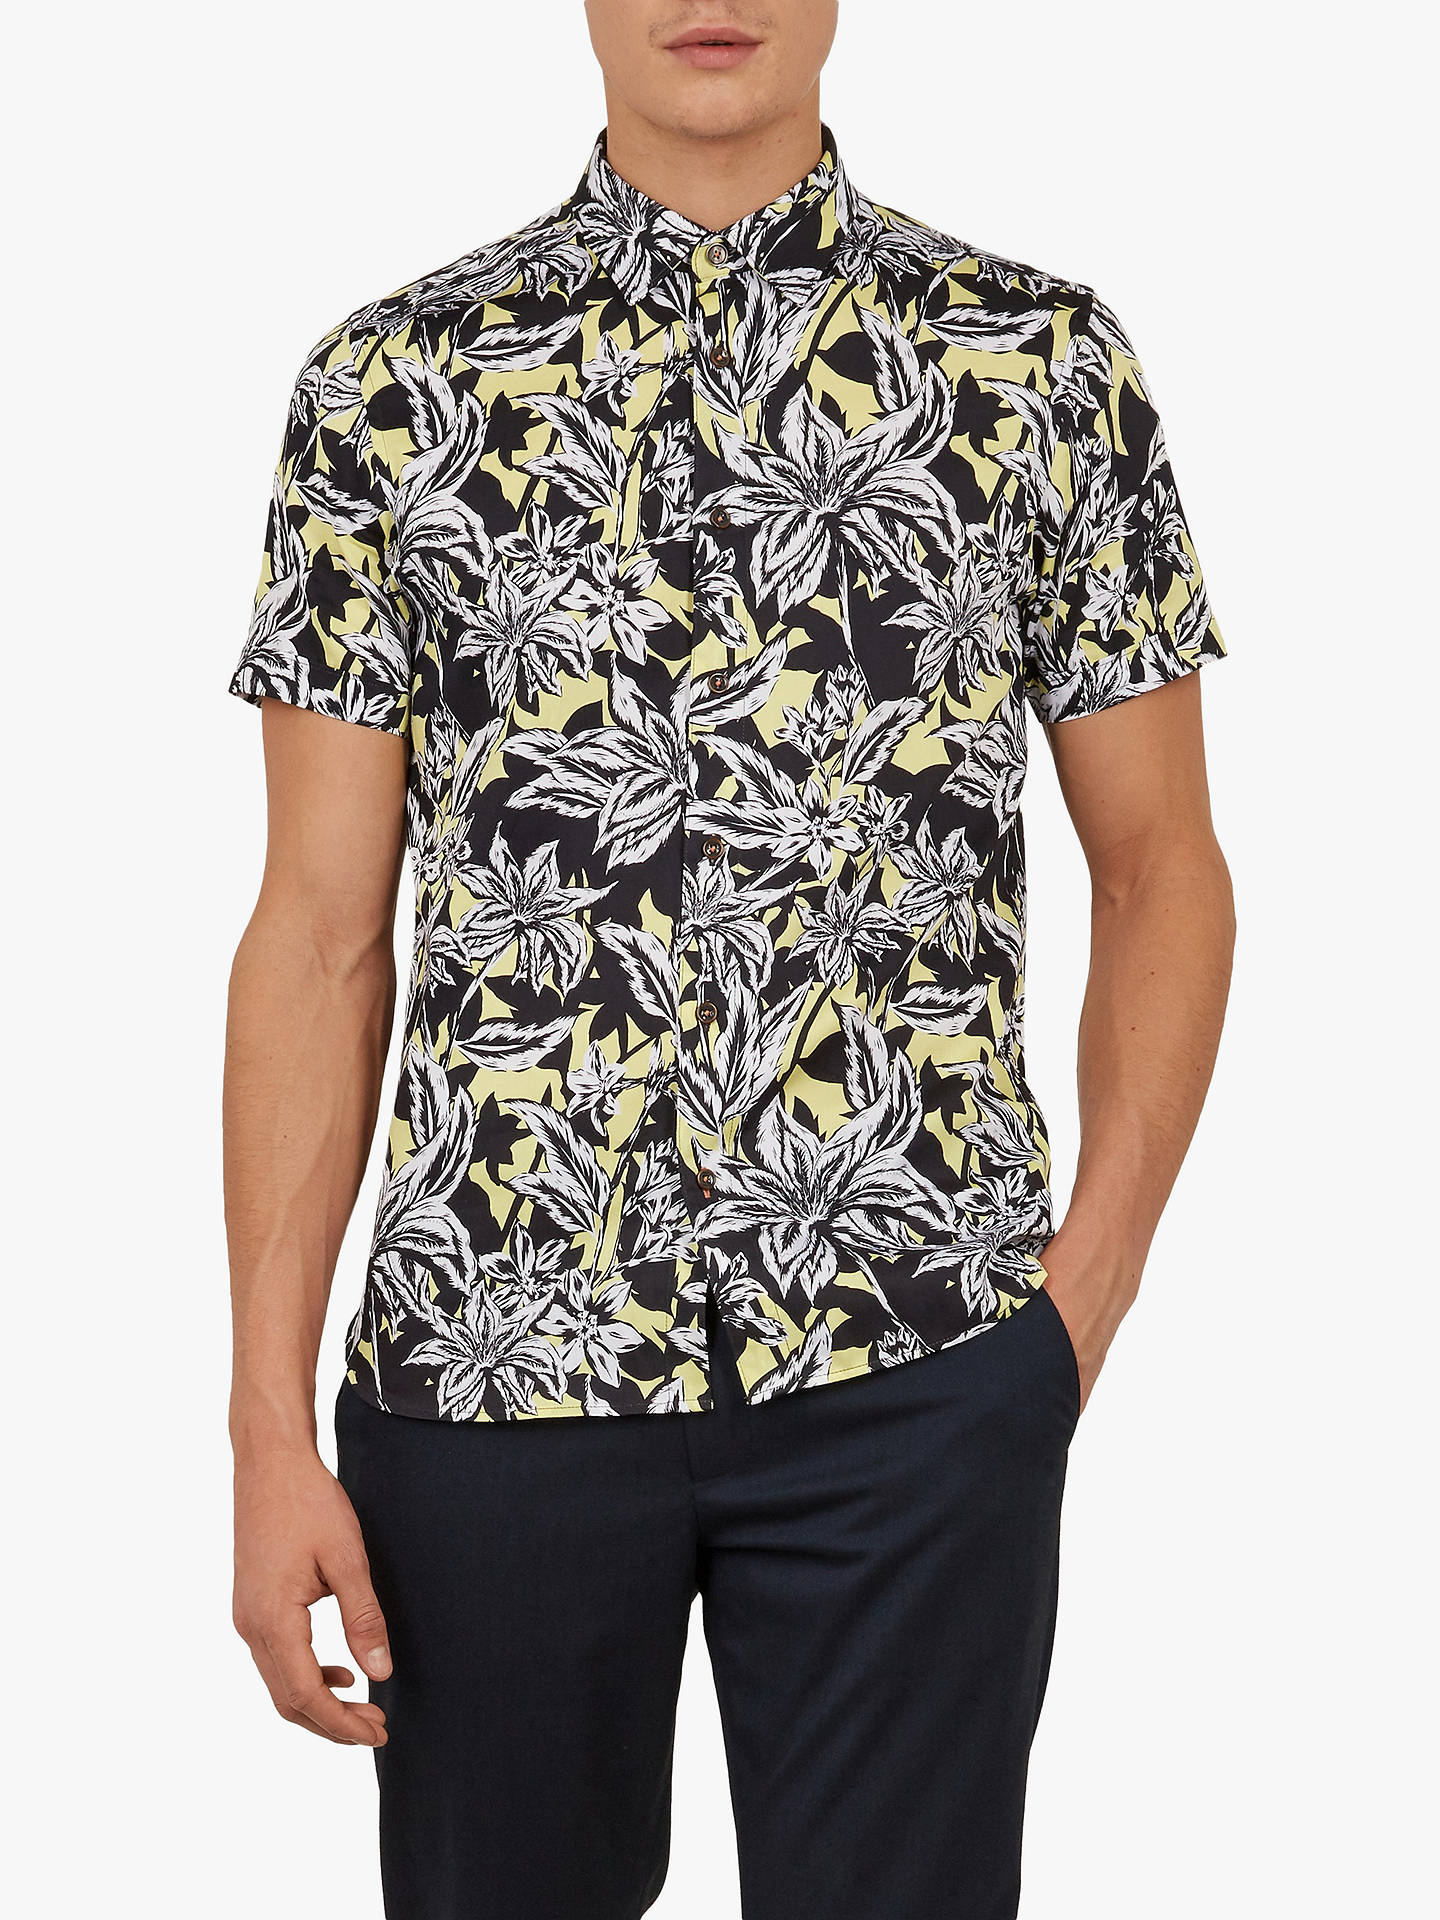 22cfcba6 Buy Ted Baker Octapss Floral Print Shirt, Mid Yellow, 15 Online at  johnlewis.